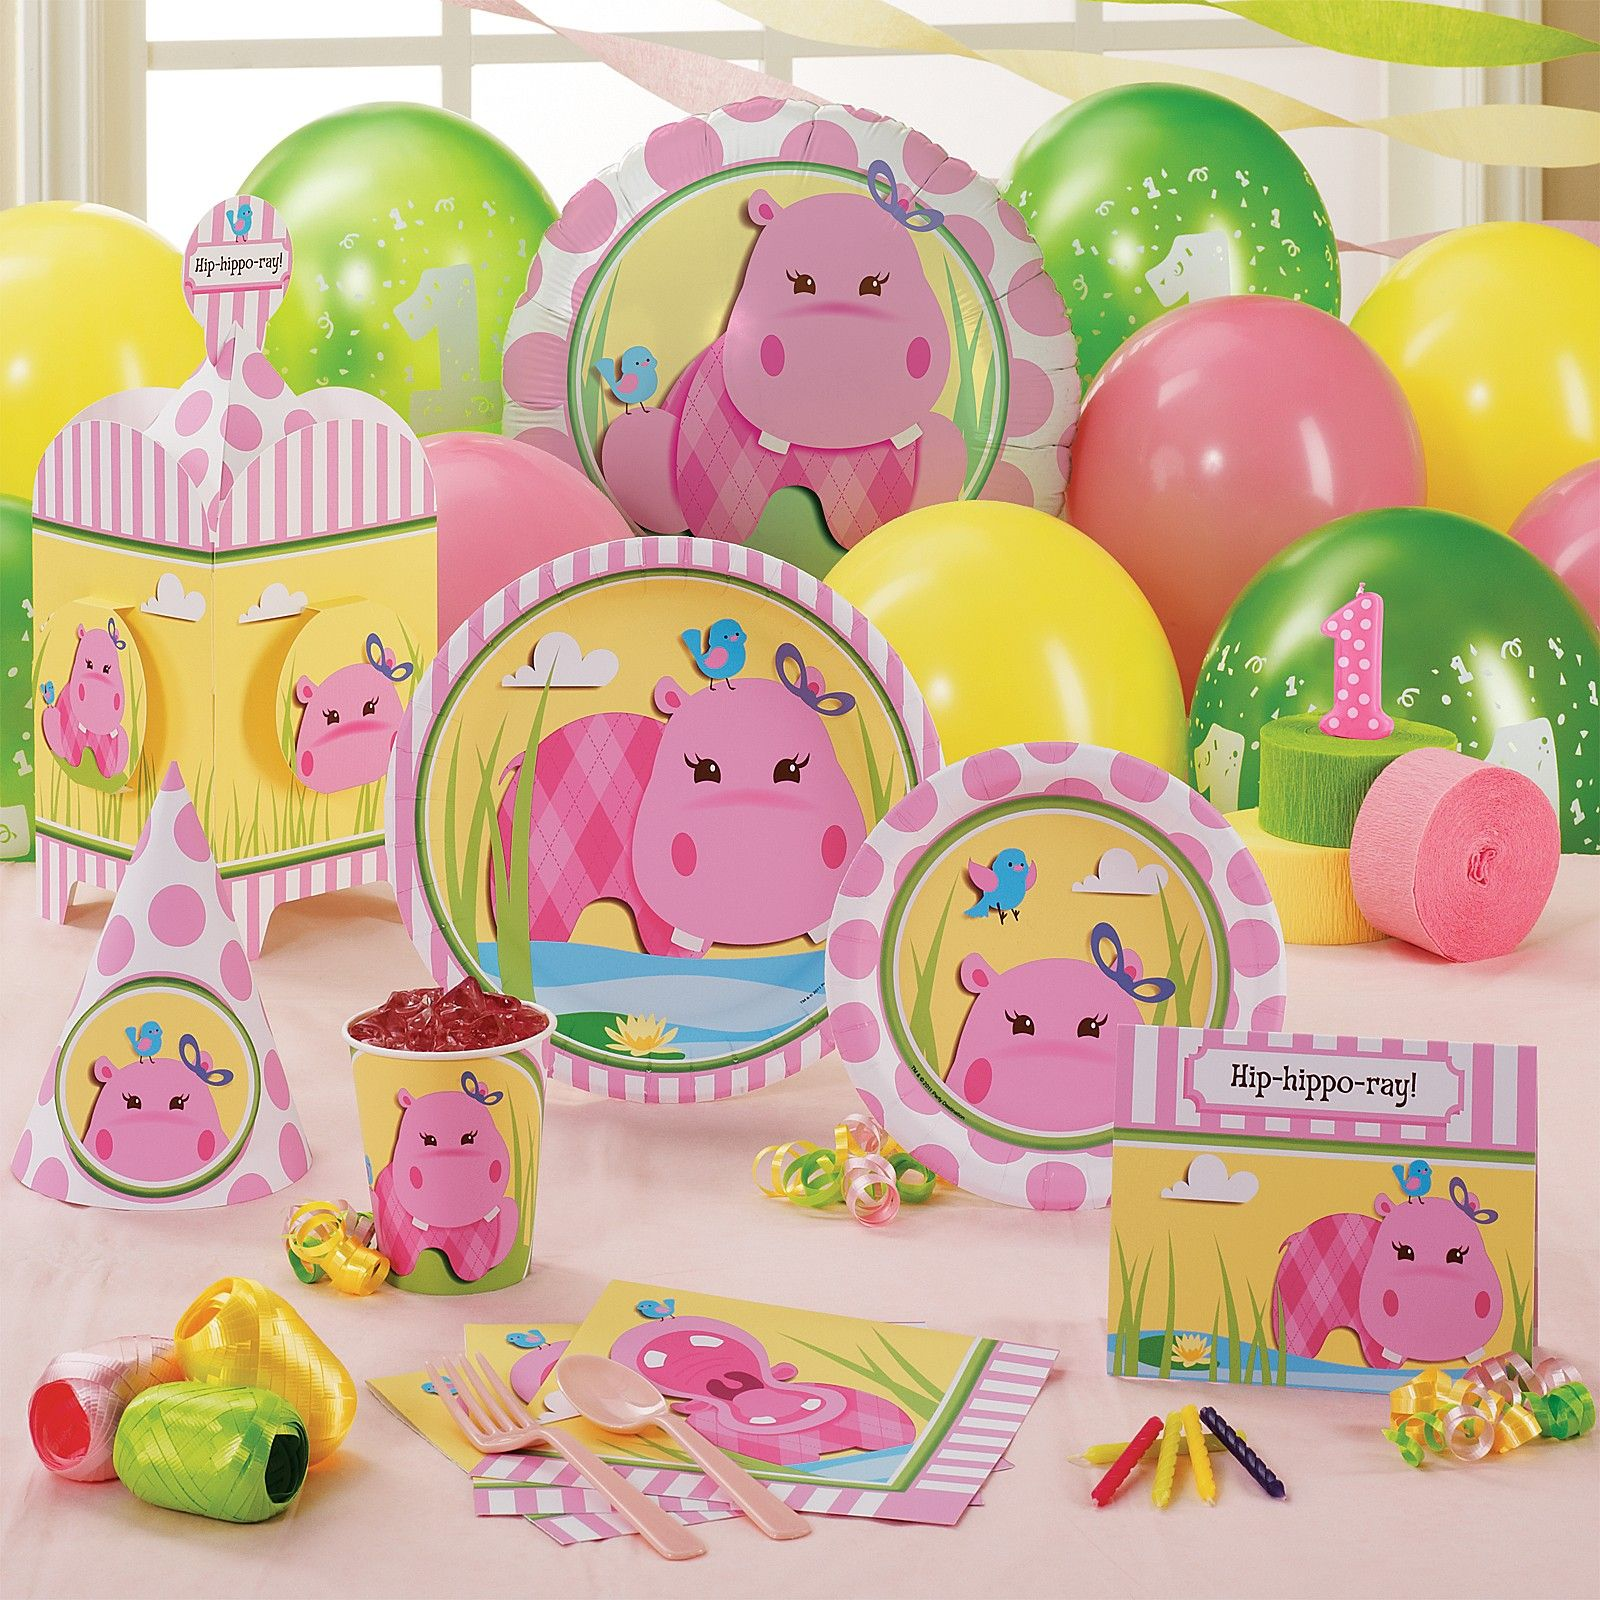 Hippo Pink Party Supplies Birthdayexpress Com 1st Birthday Parties Birthday Party Packs 1st Birthday Party Supplies